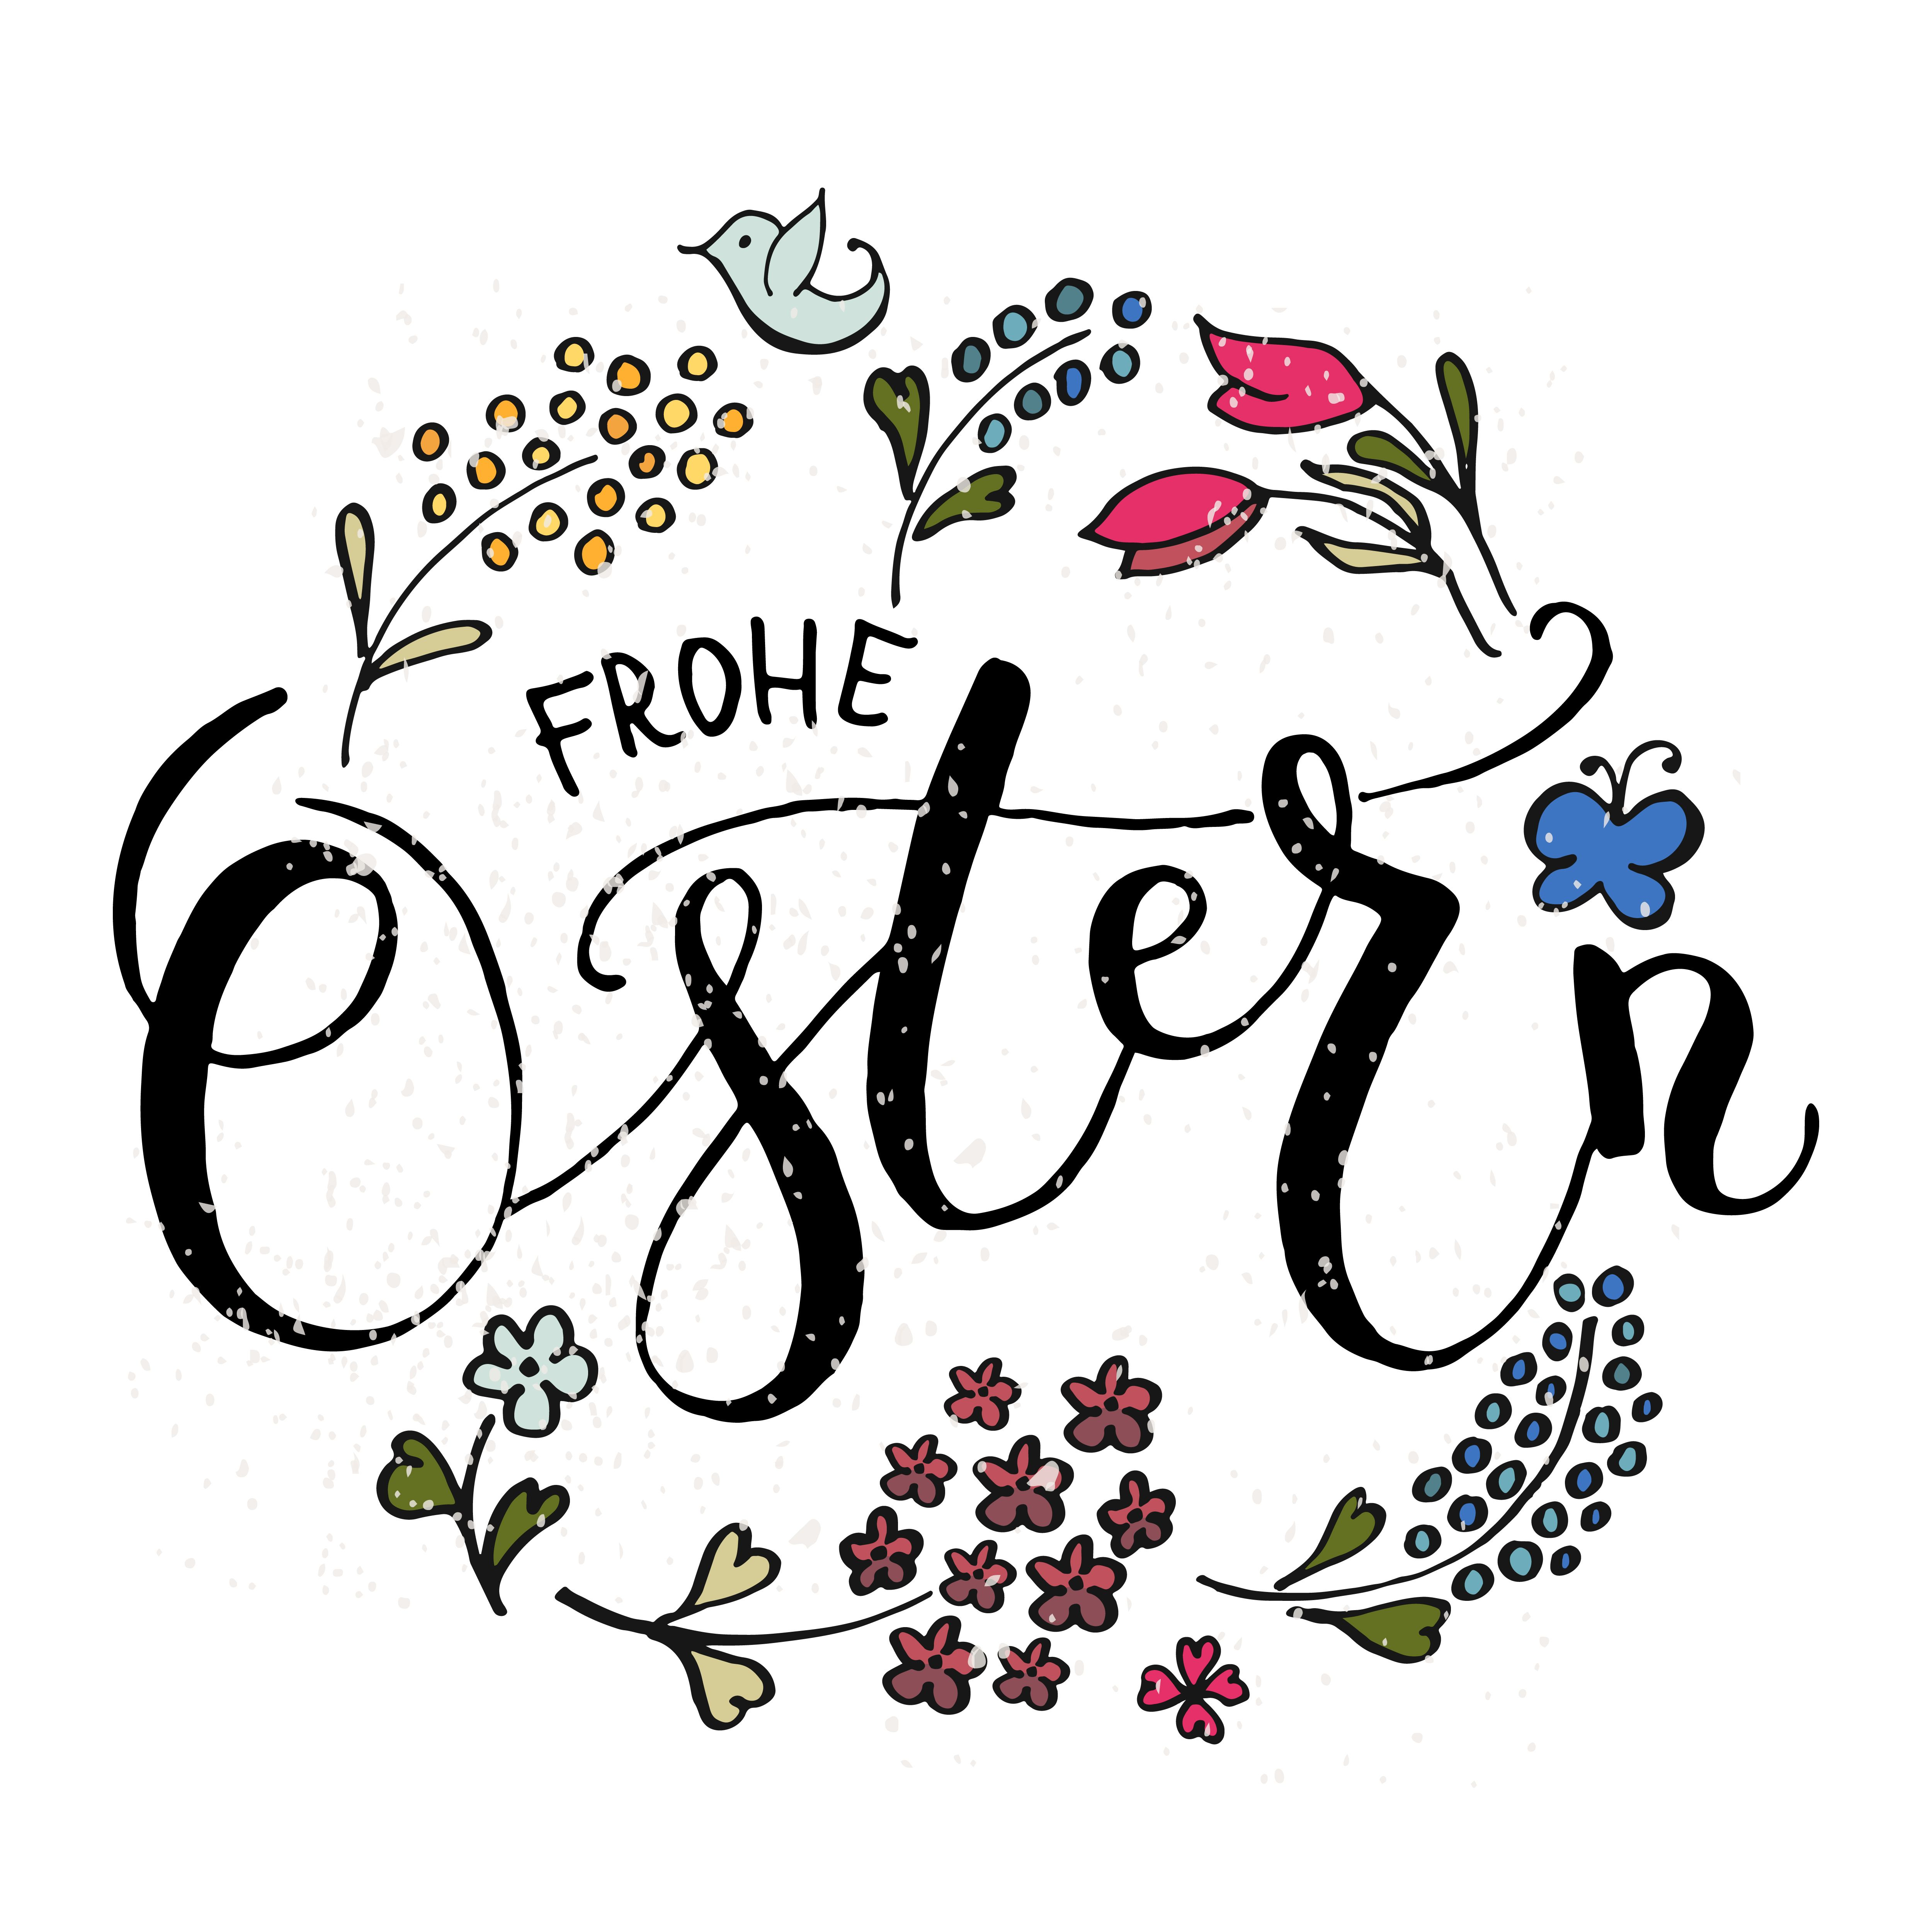 Frohe Ostern Schrift